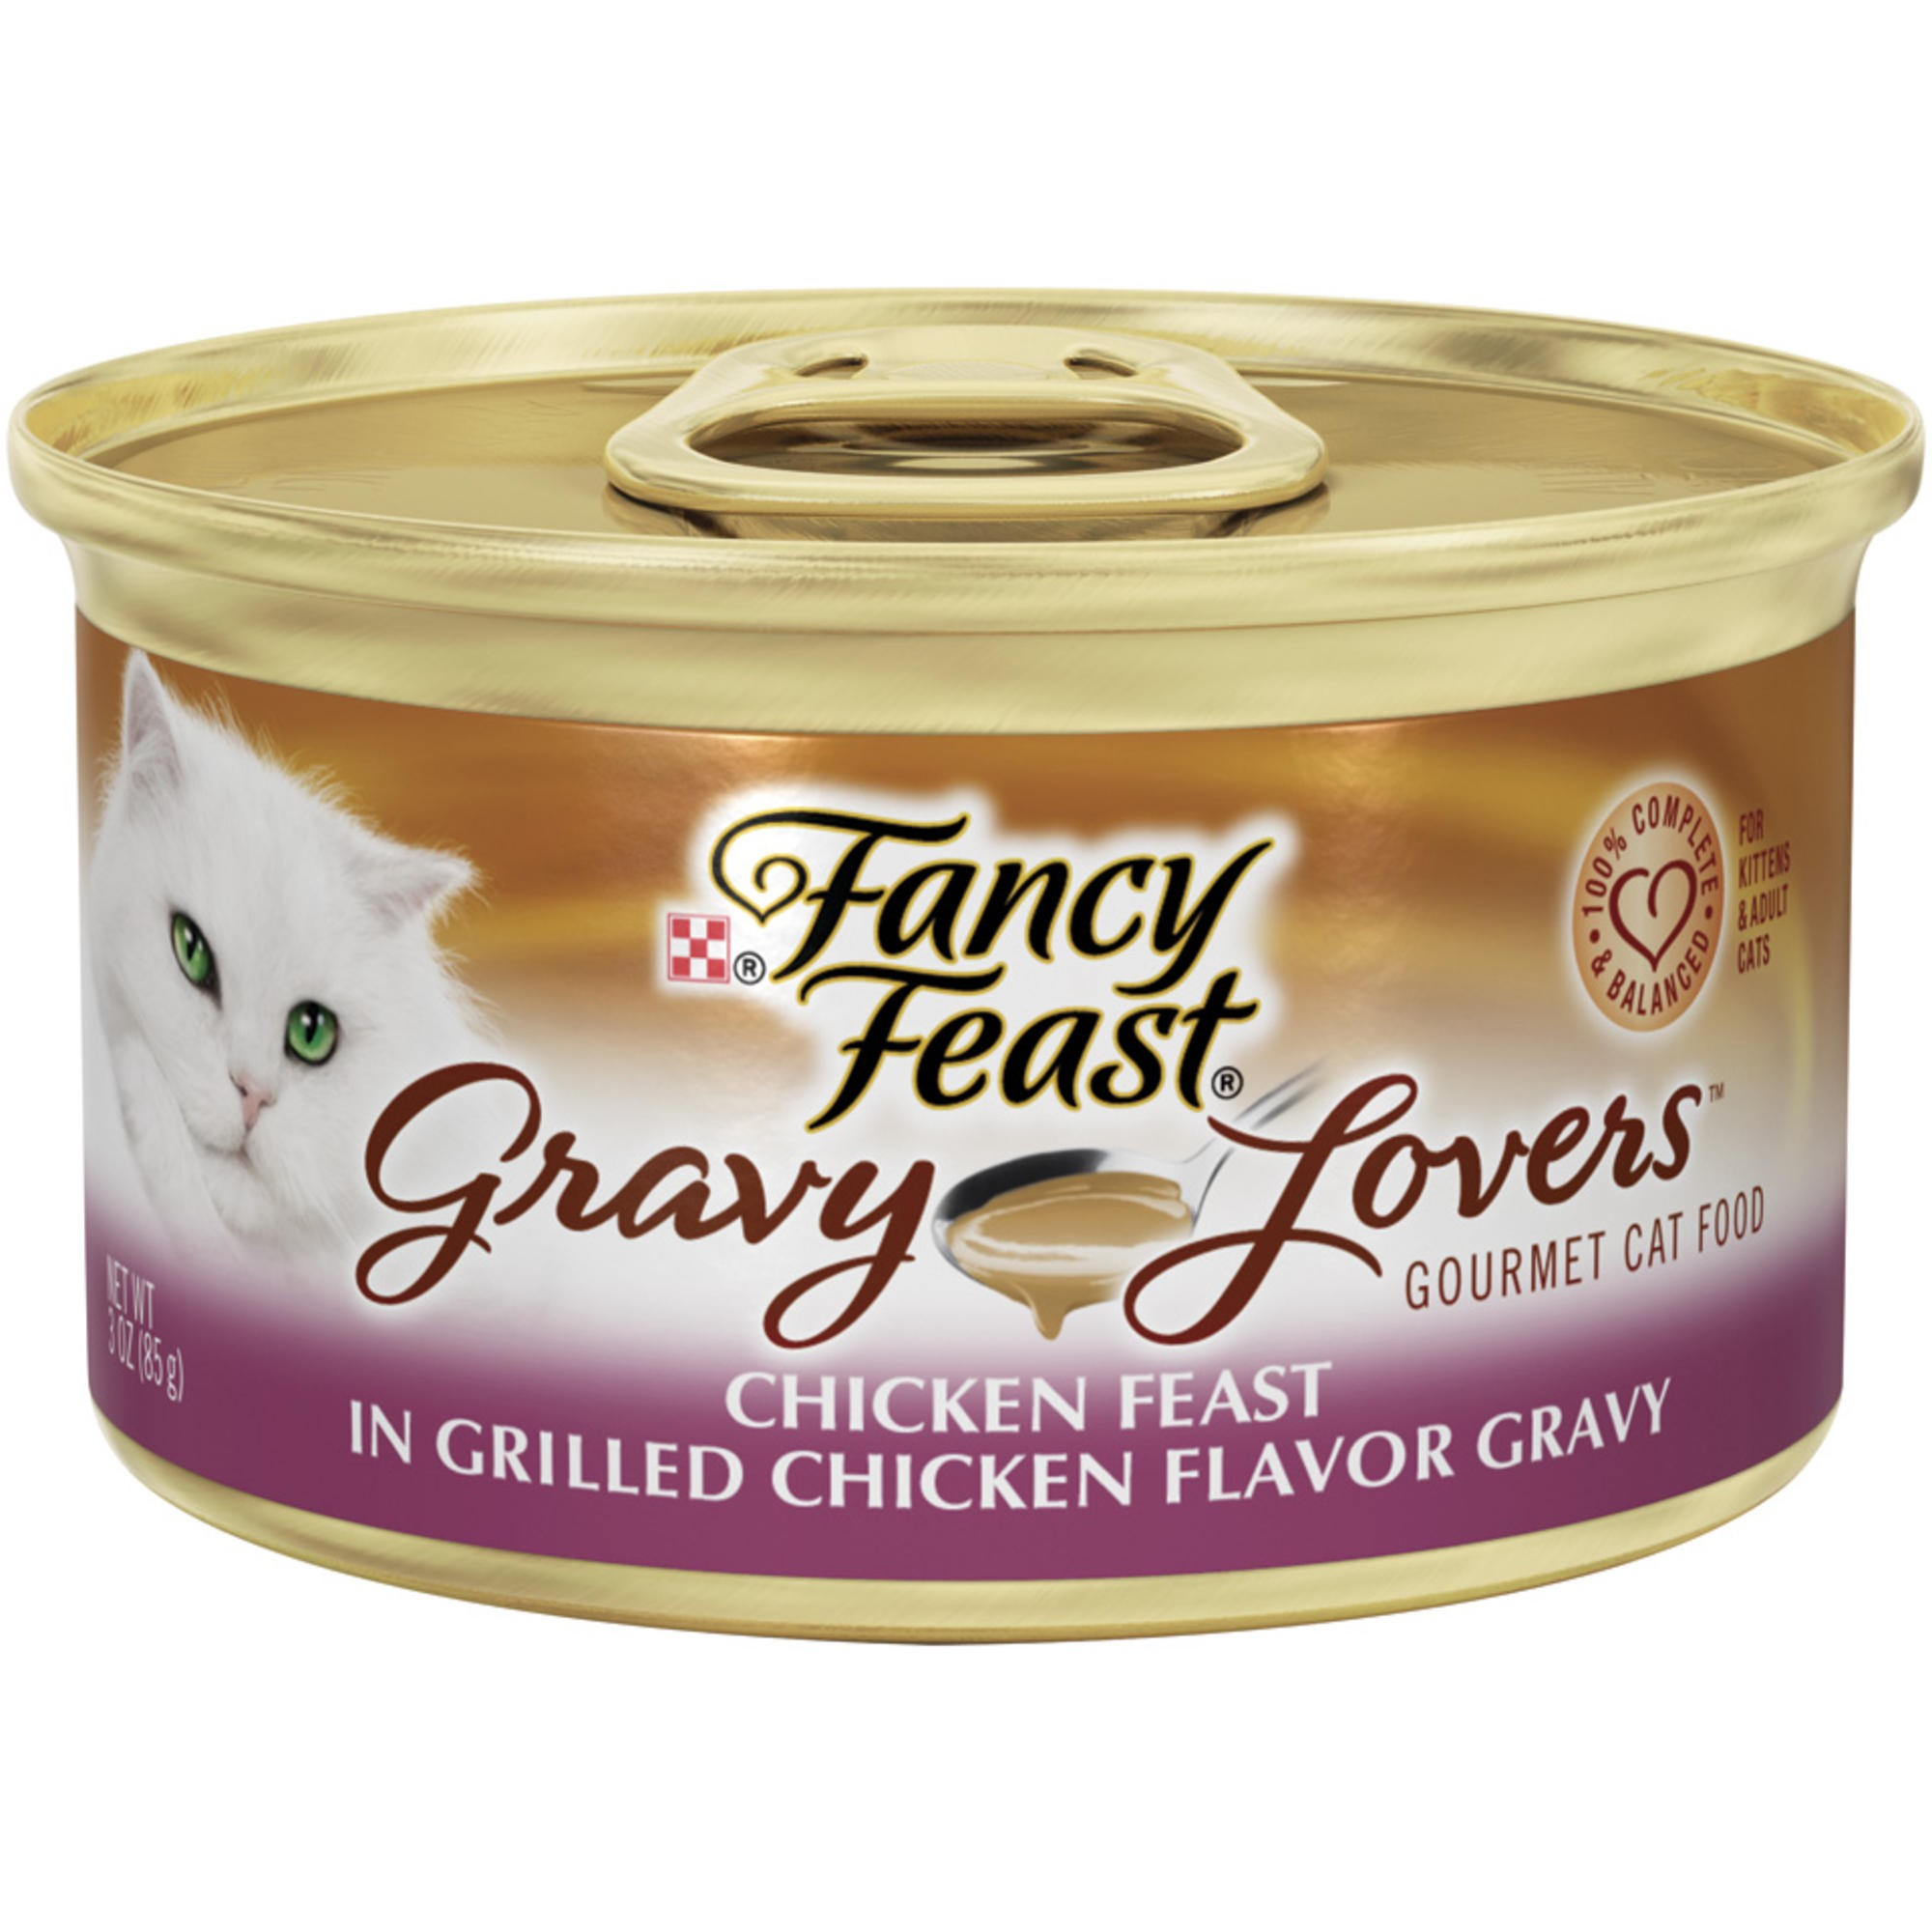 Purina Fancy Feast Gravy Lovers Chicken Feast in Grilled Chicken Flavor Gravy Wet Cat Food- (24) 3-oz Cans